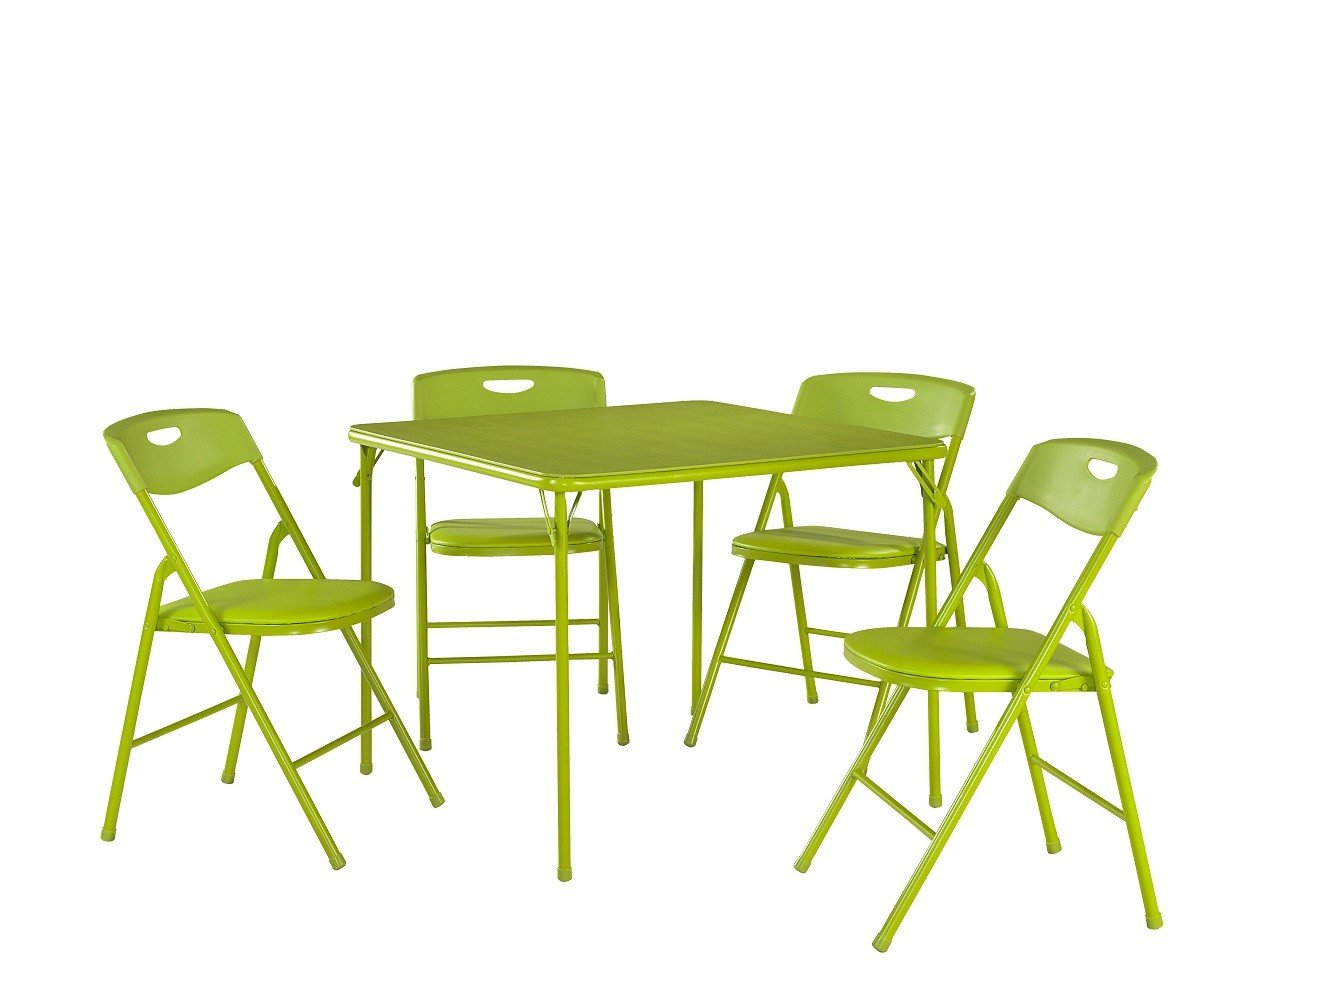 Cosco 5-Piece Folding Table and Chair Set, Apple Green